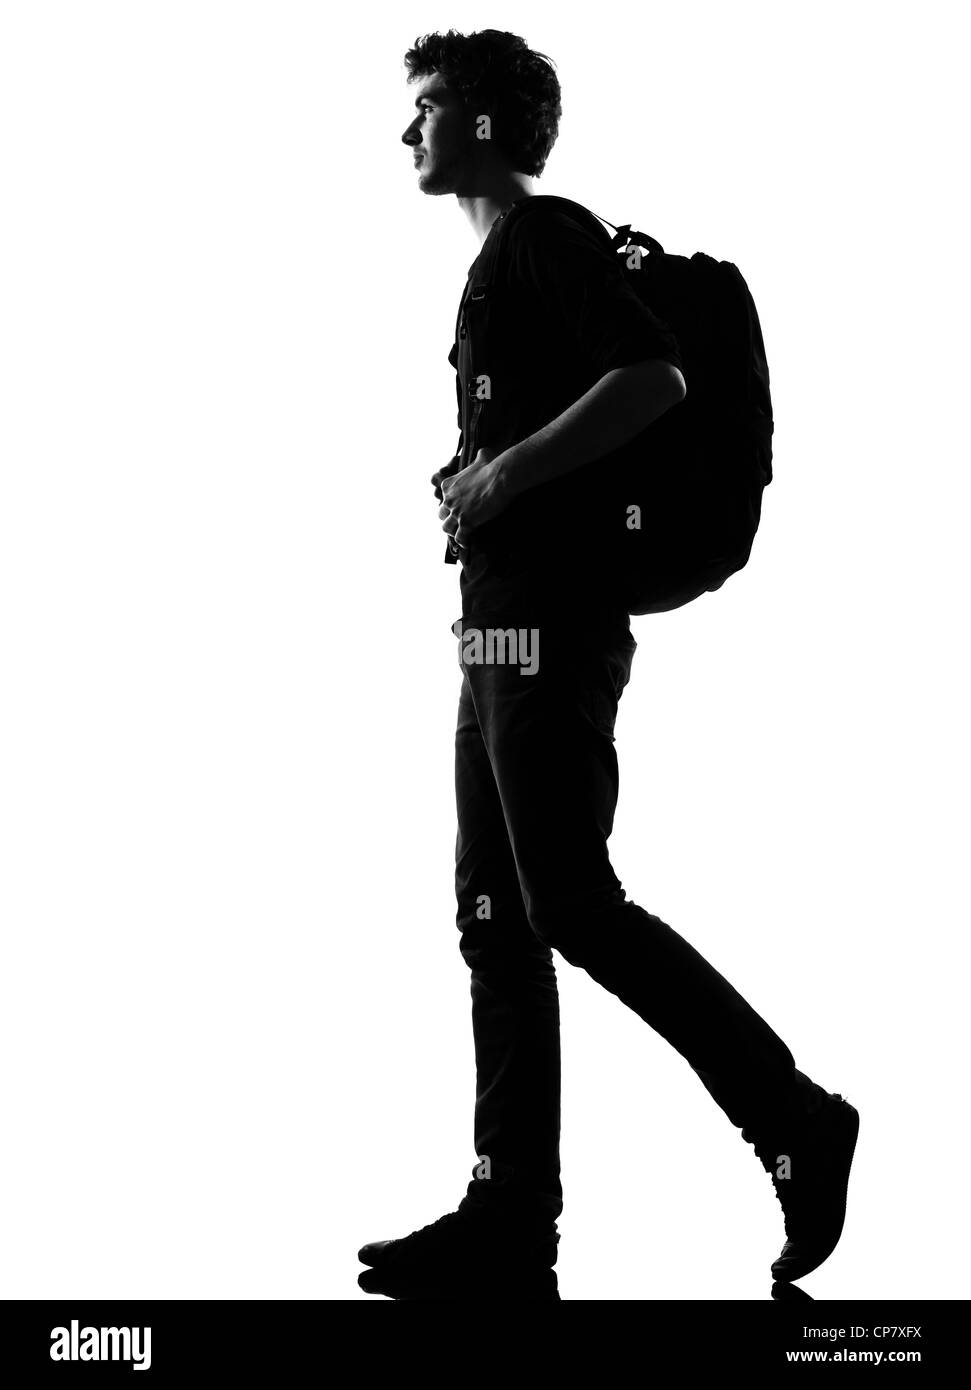 young man backpacker walking silhouette in studio isolated on white background - Stock Image